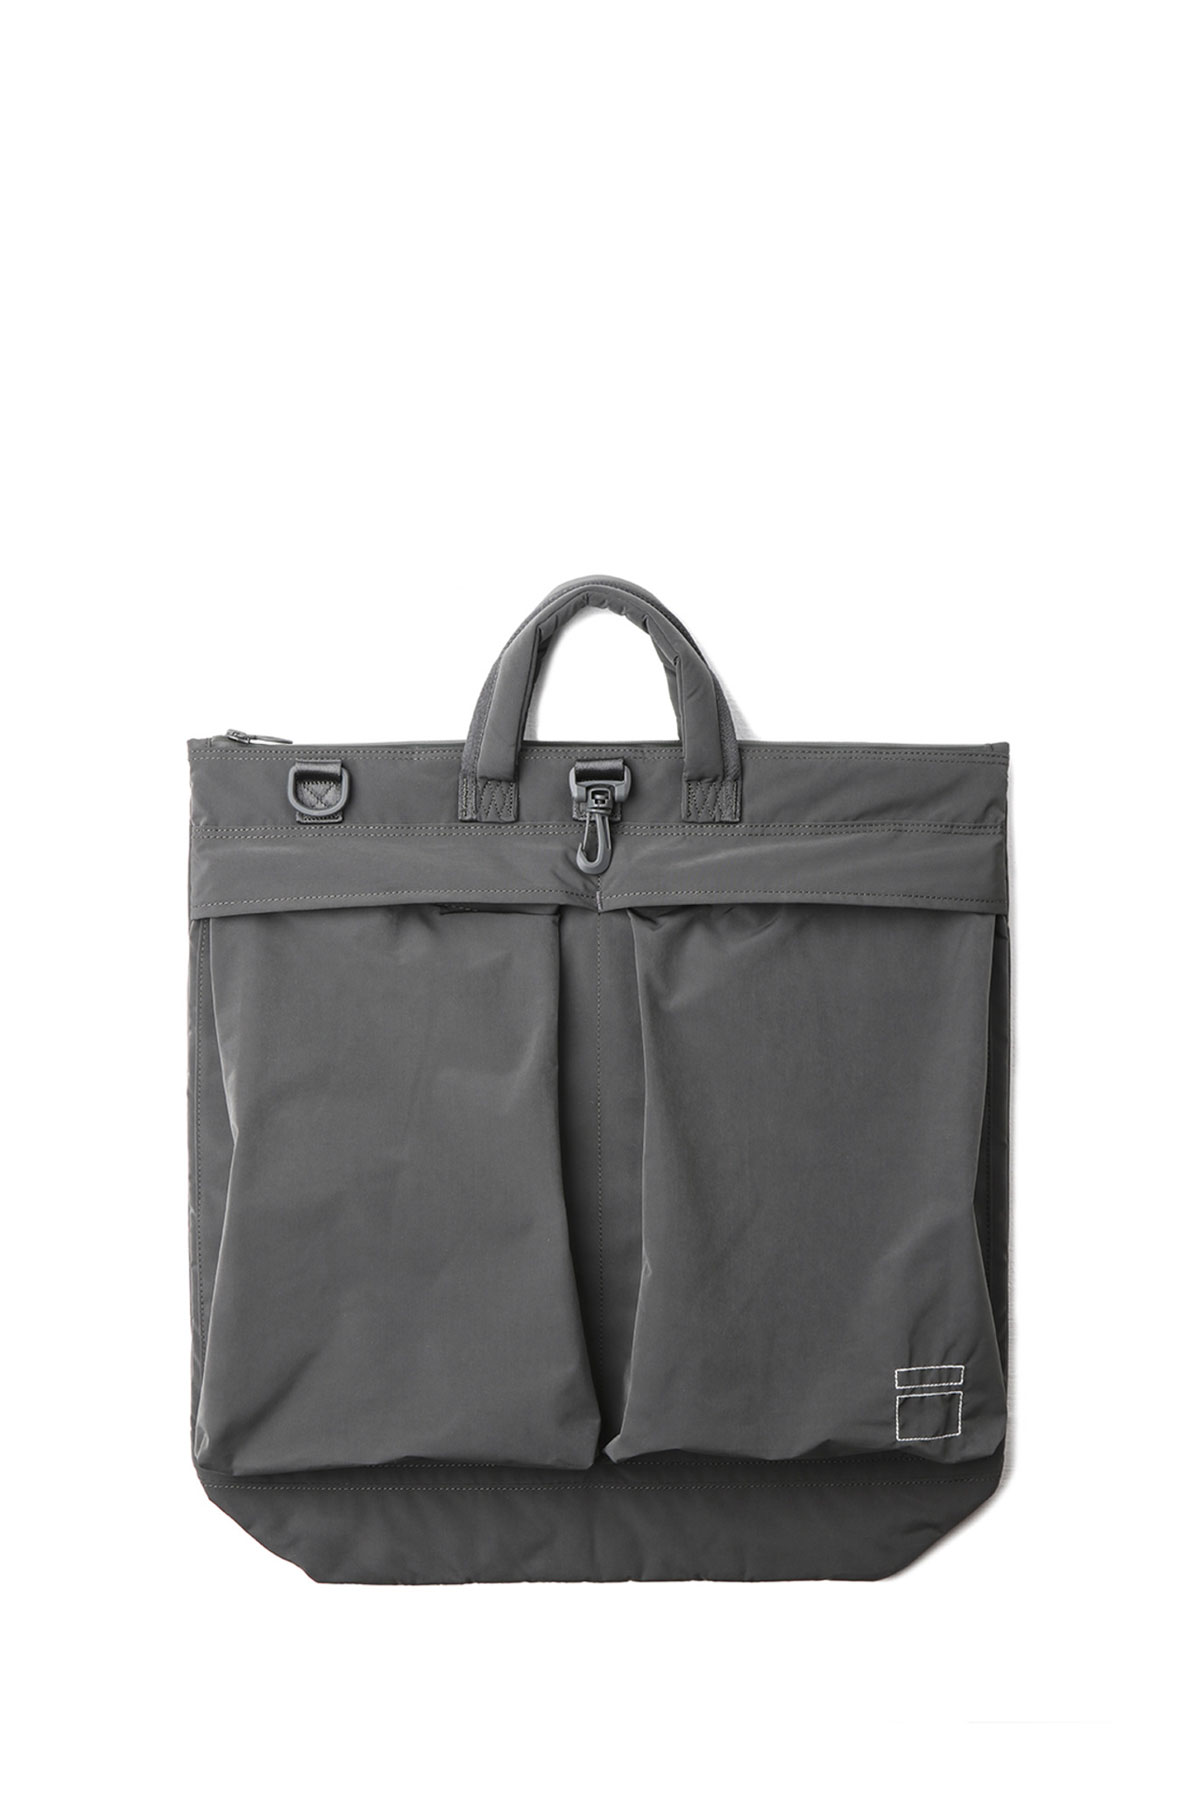 Blankof : BLG 01 24IN Helmet Bag (O.Grey)